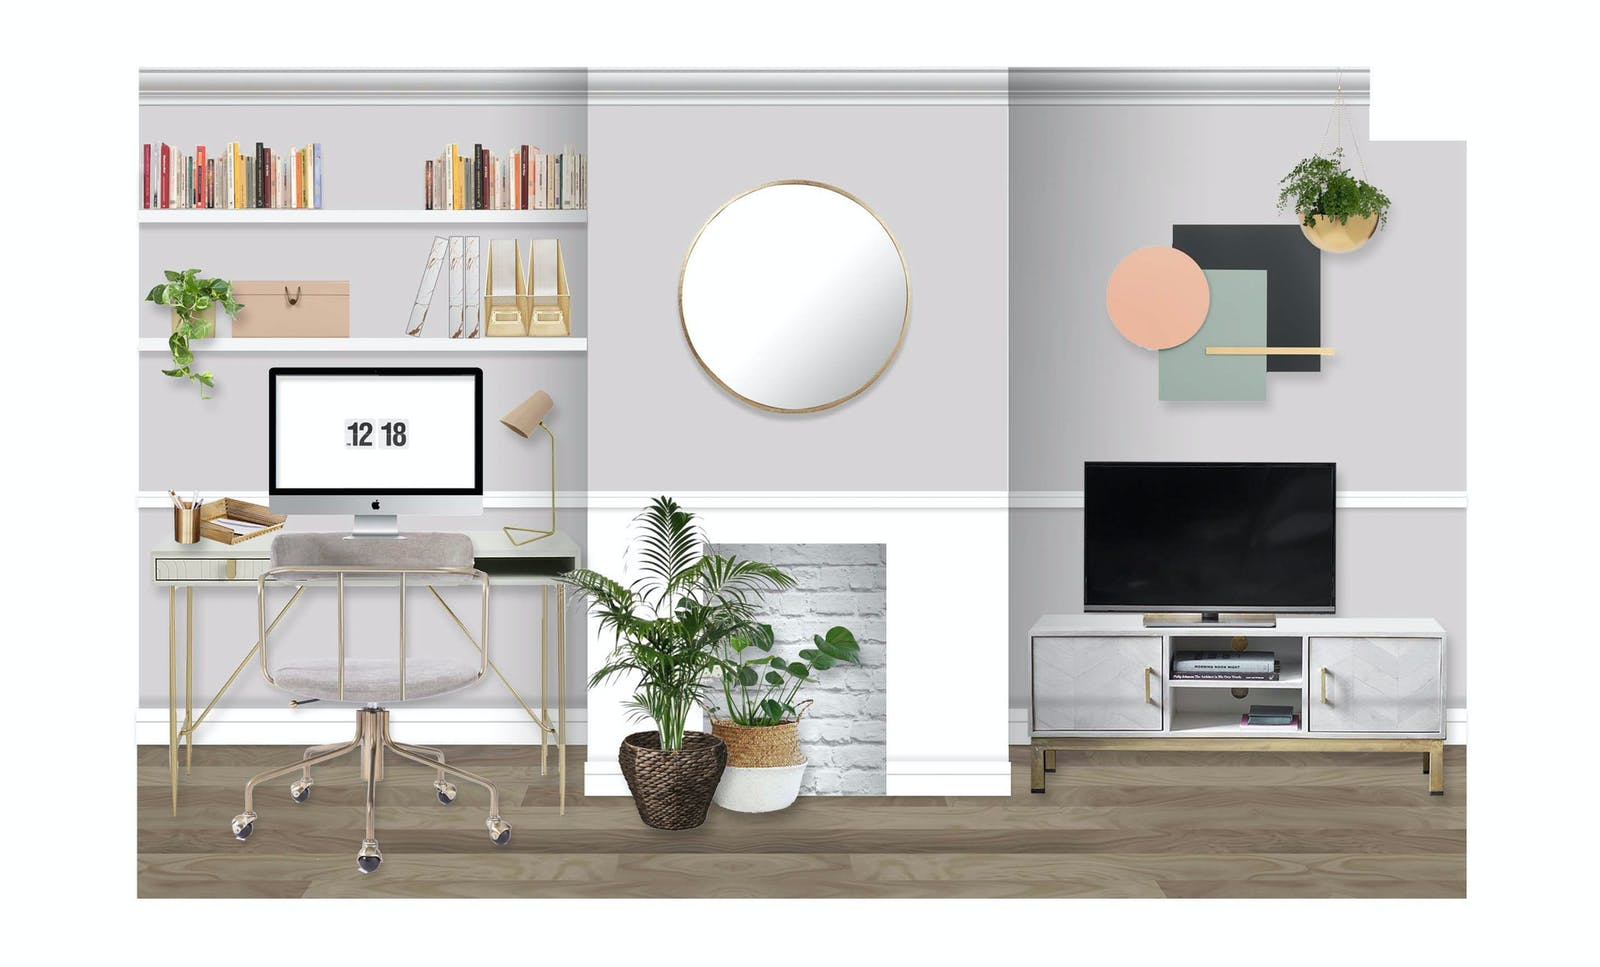 Office render with modern furniture, grey walls and house plants